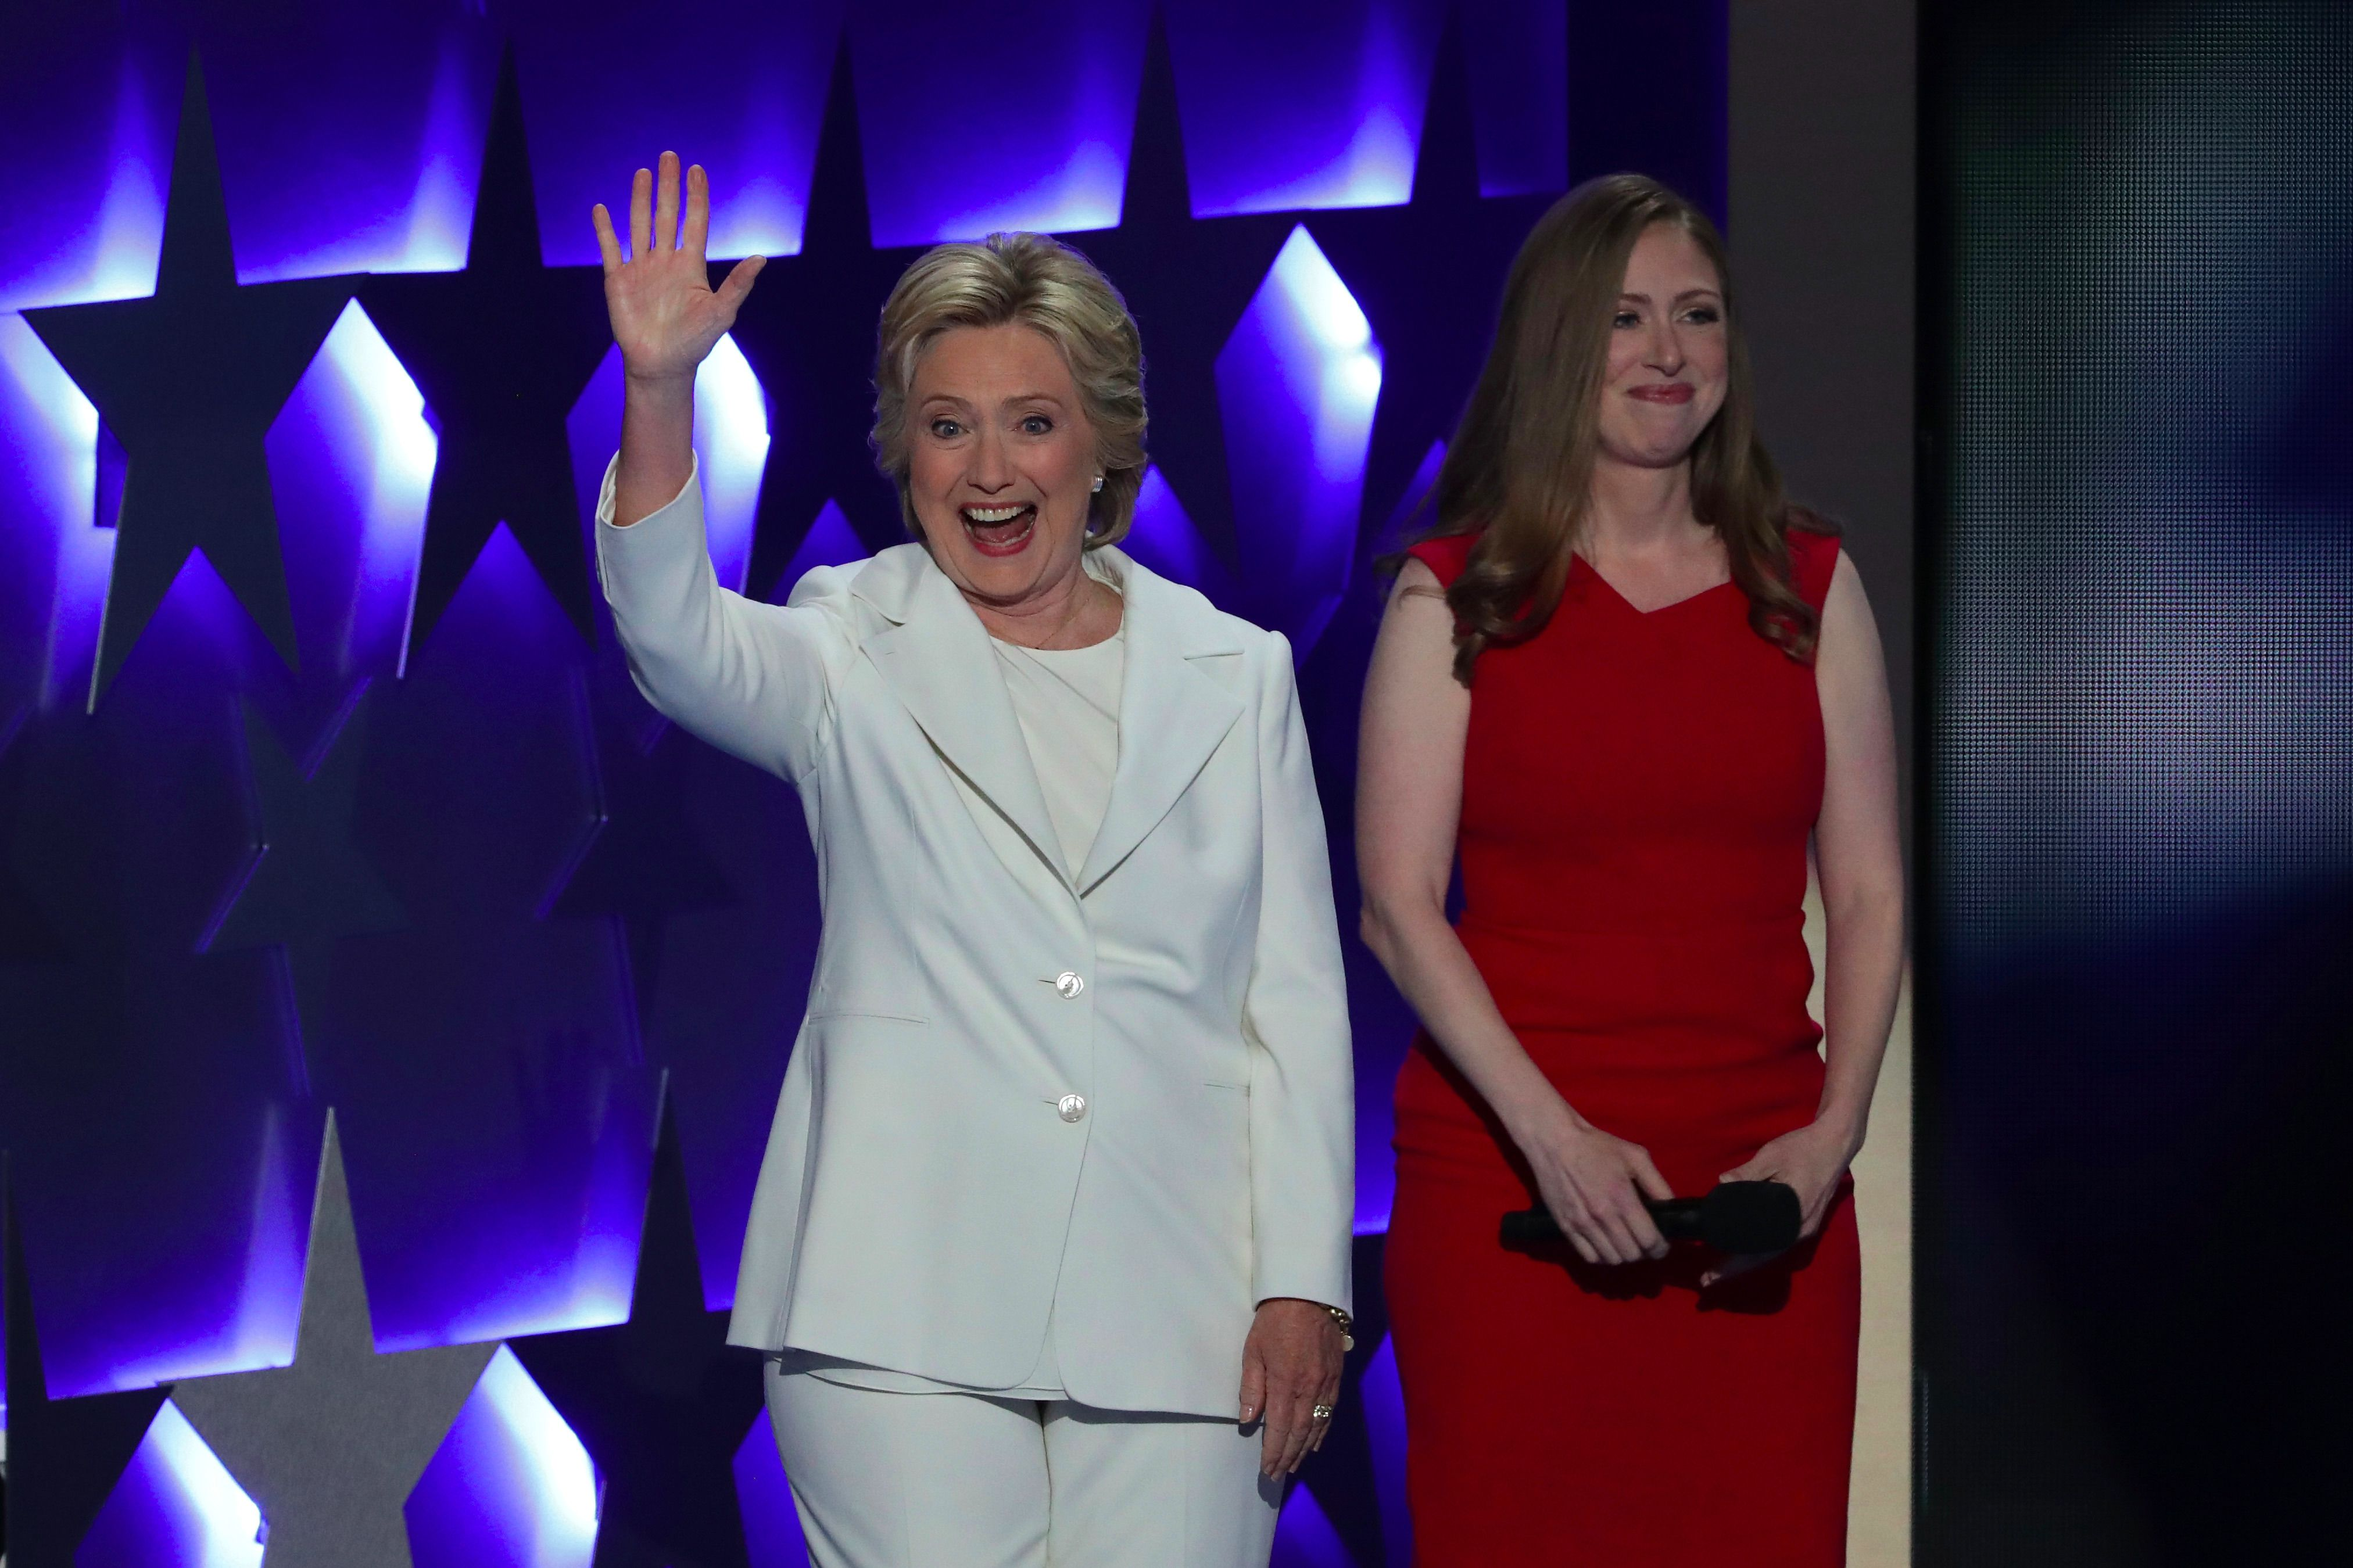 Hillary and Chelsea Clinton at the Democratic National Convention, July 28, 2016 in Philadelphia, Pennsylvania.